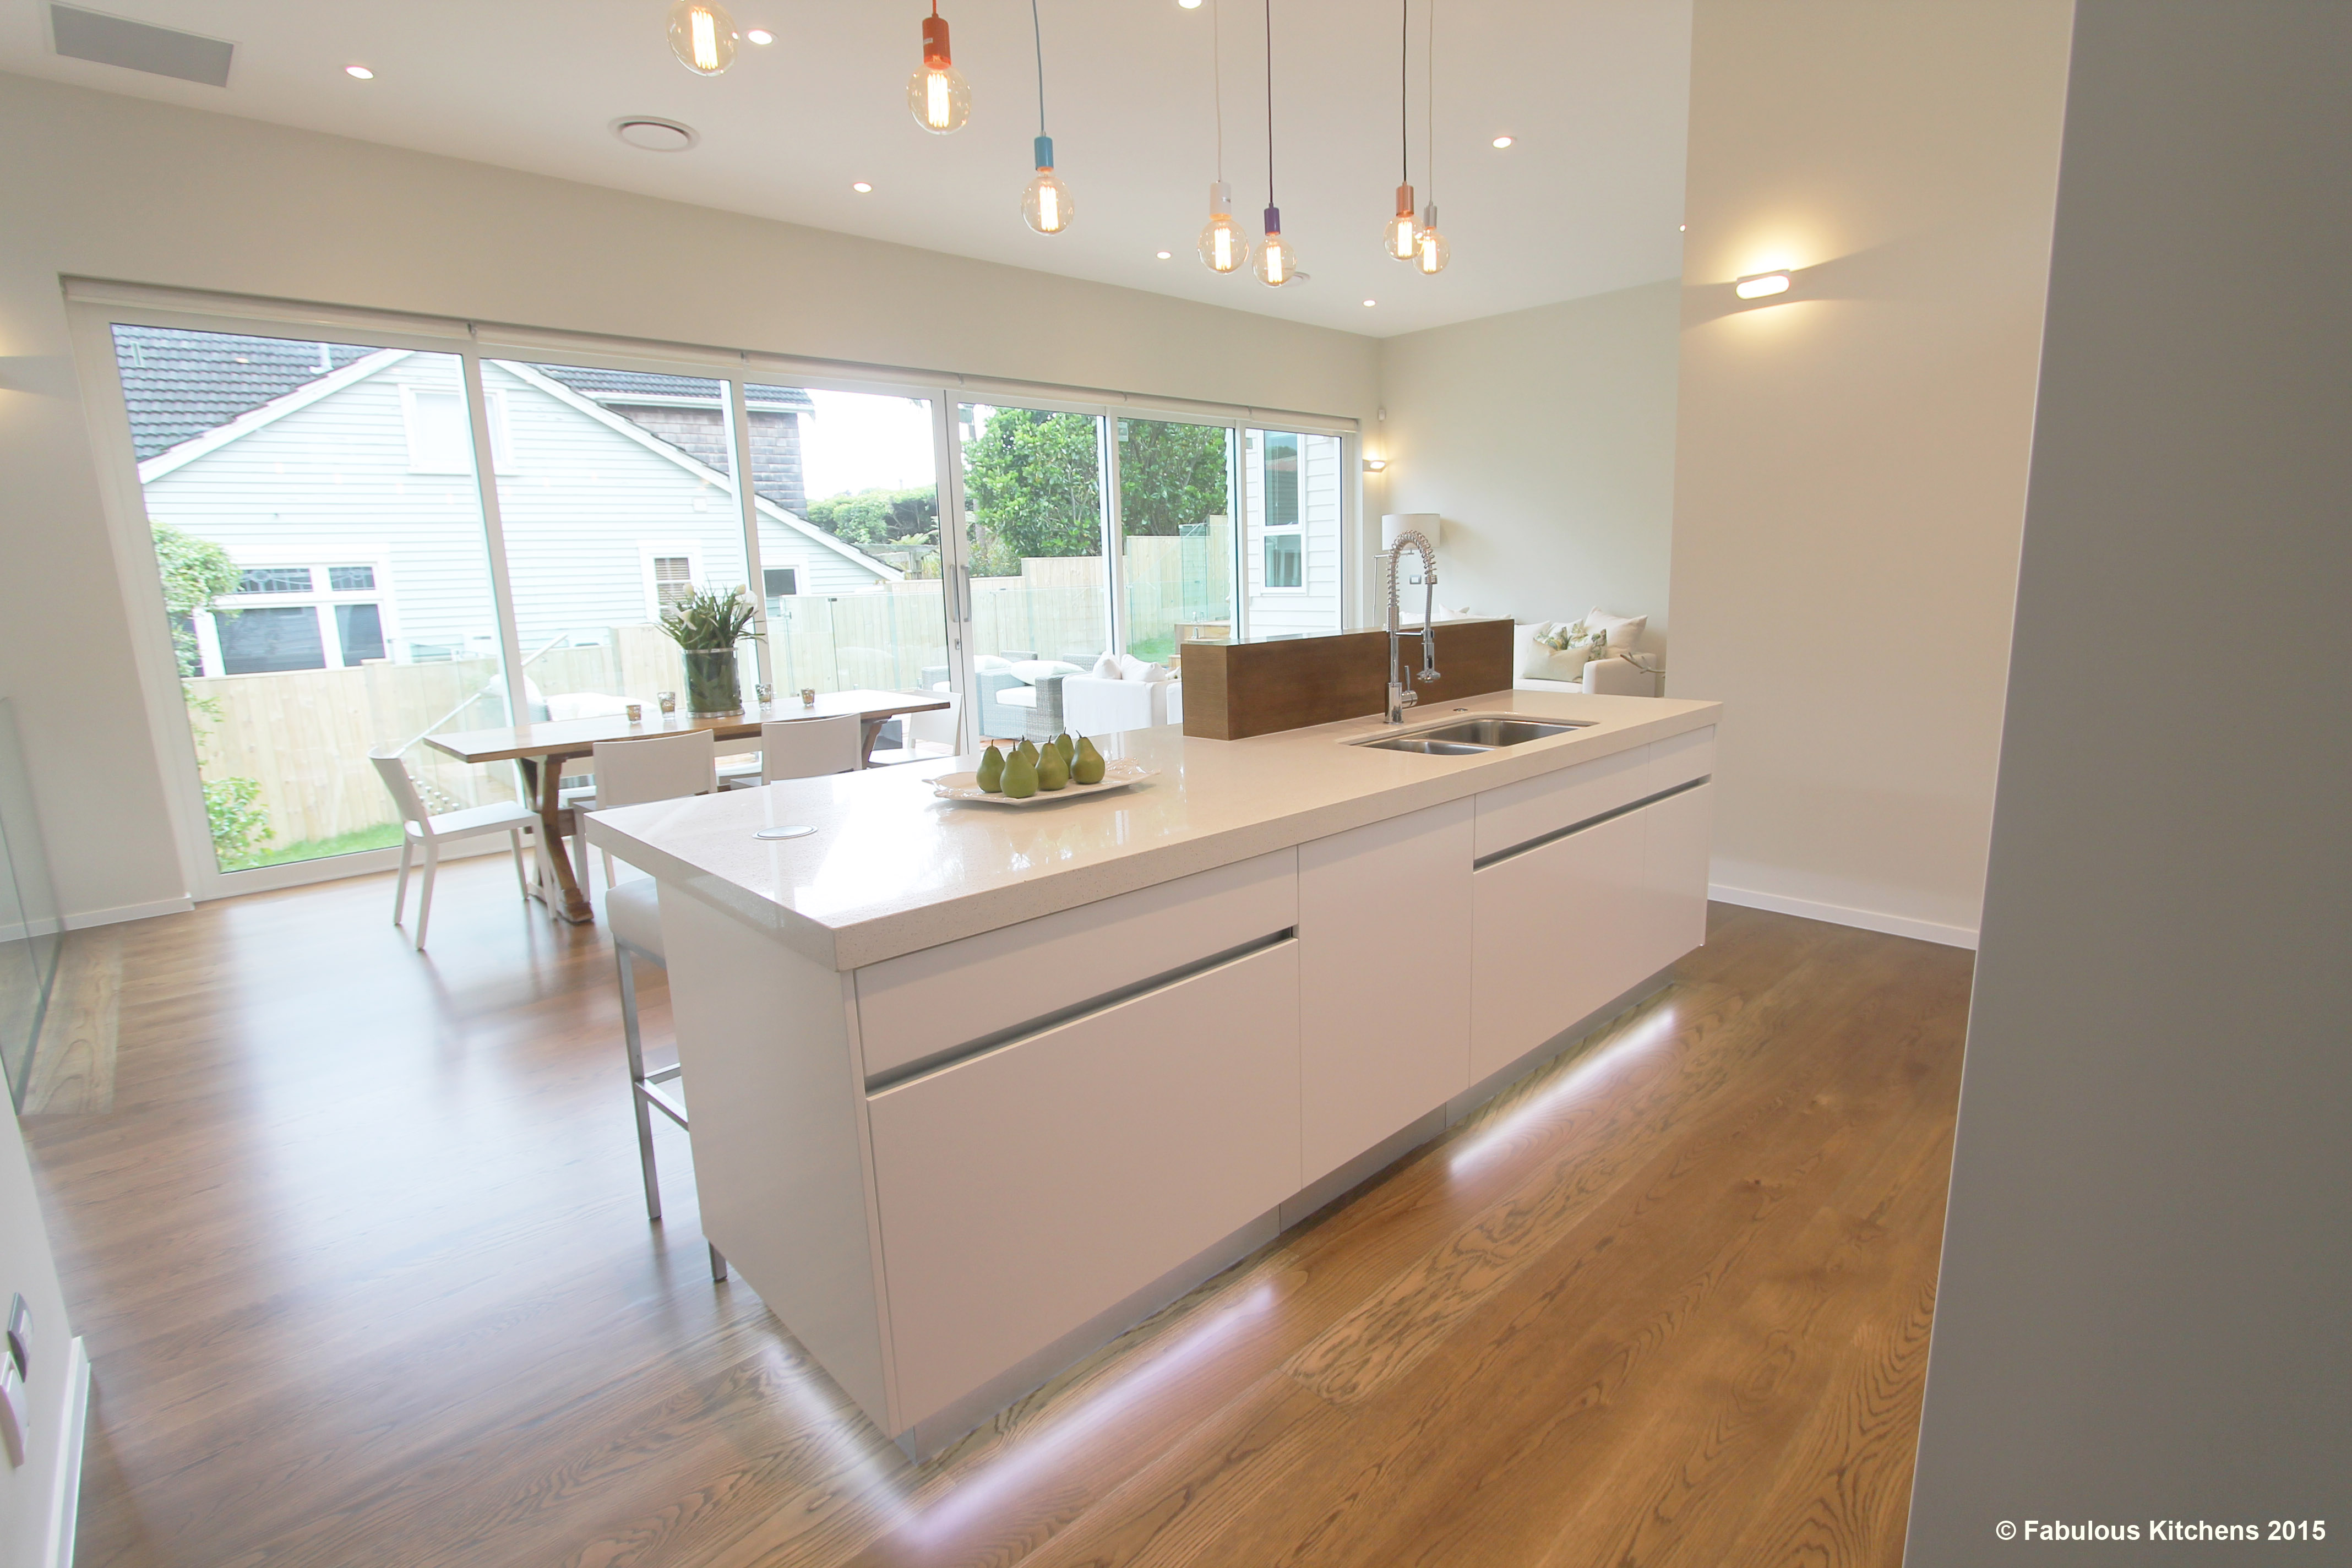 Gallery 49 remuera gallery fabulous kitchens for Fabulous kitchens